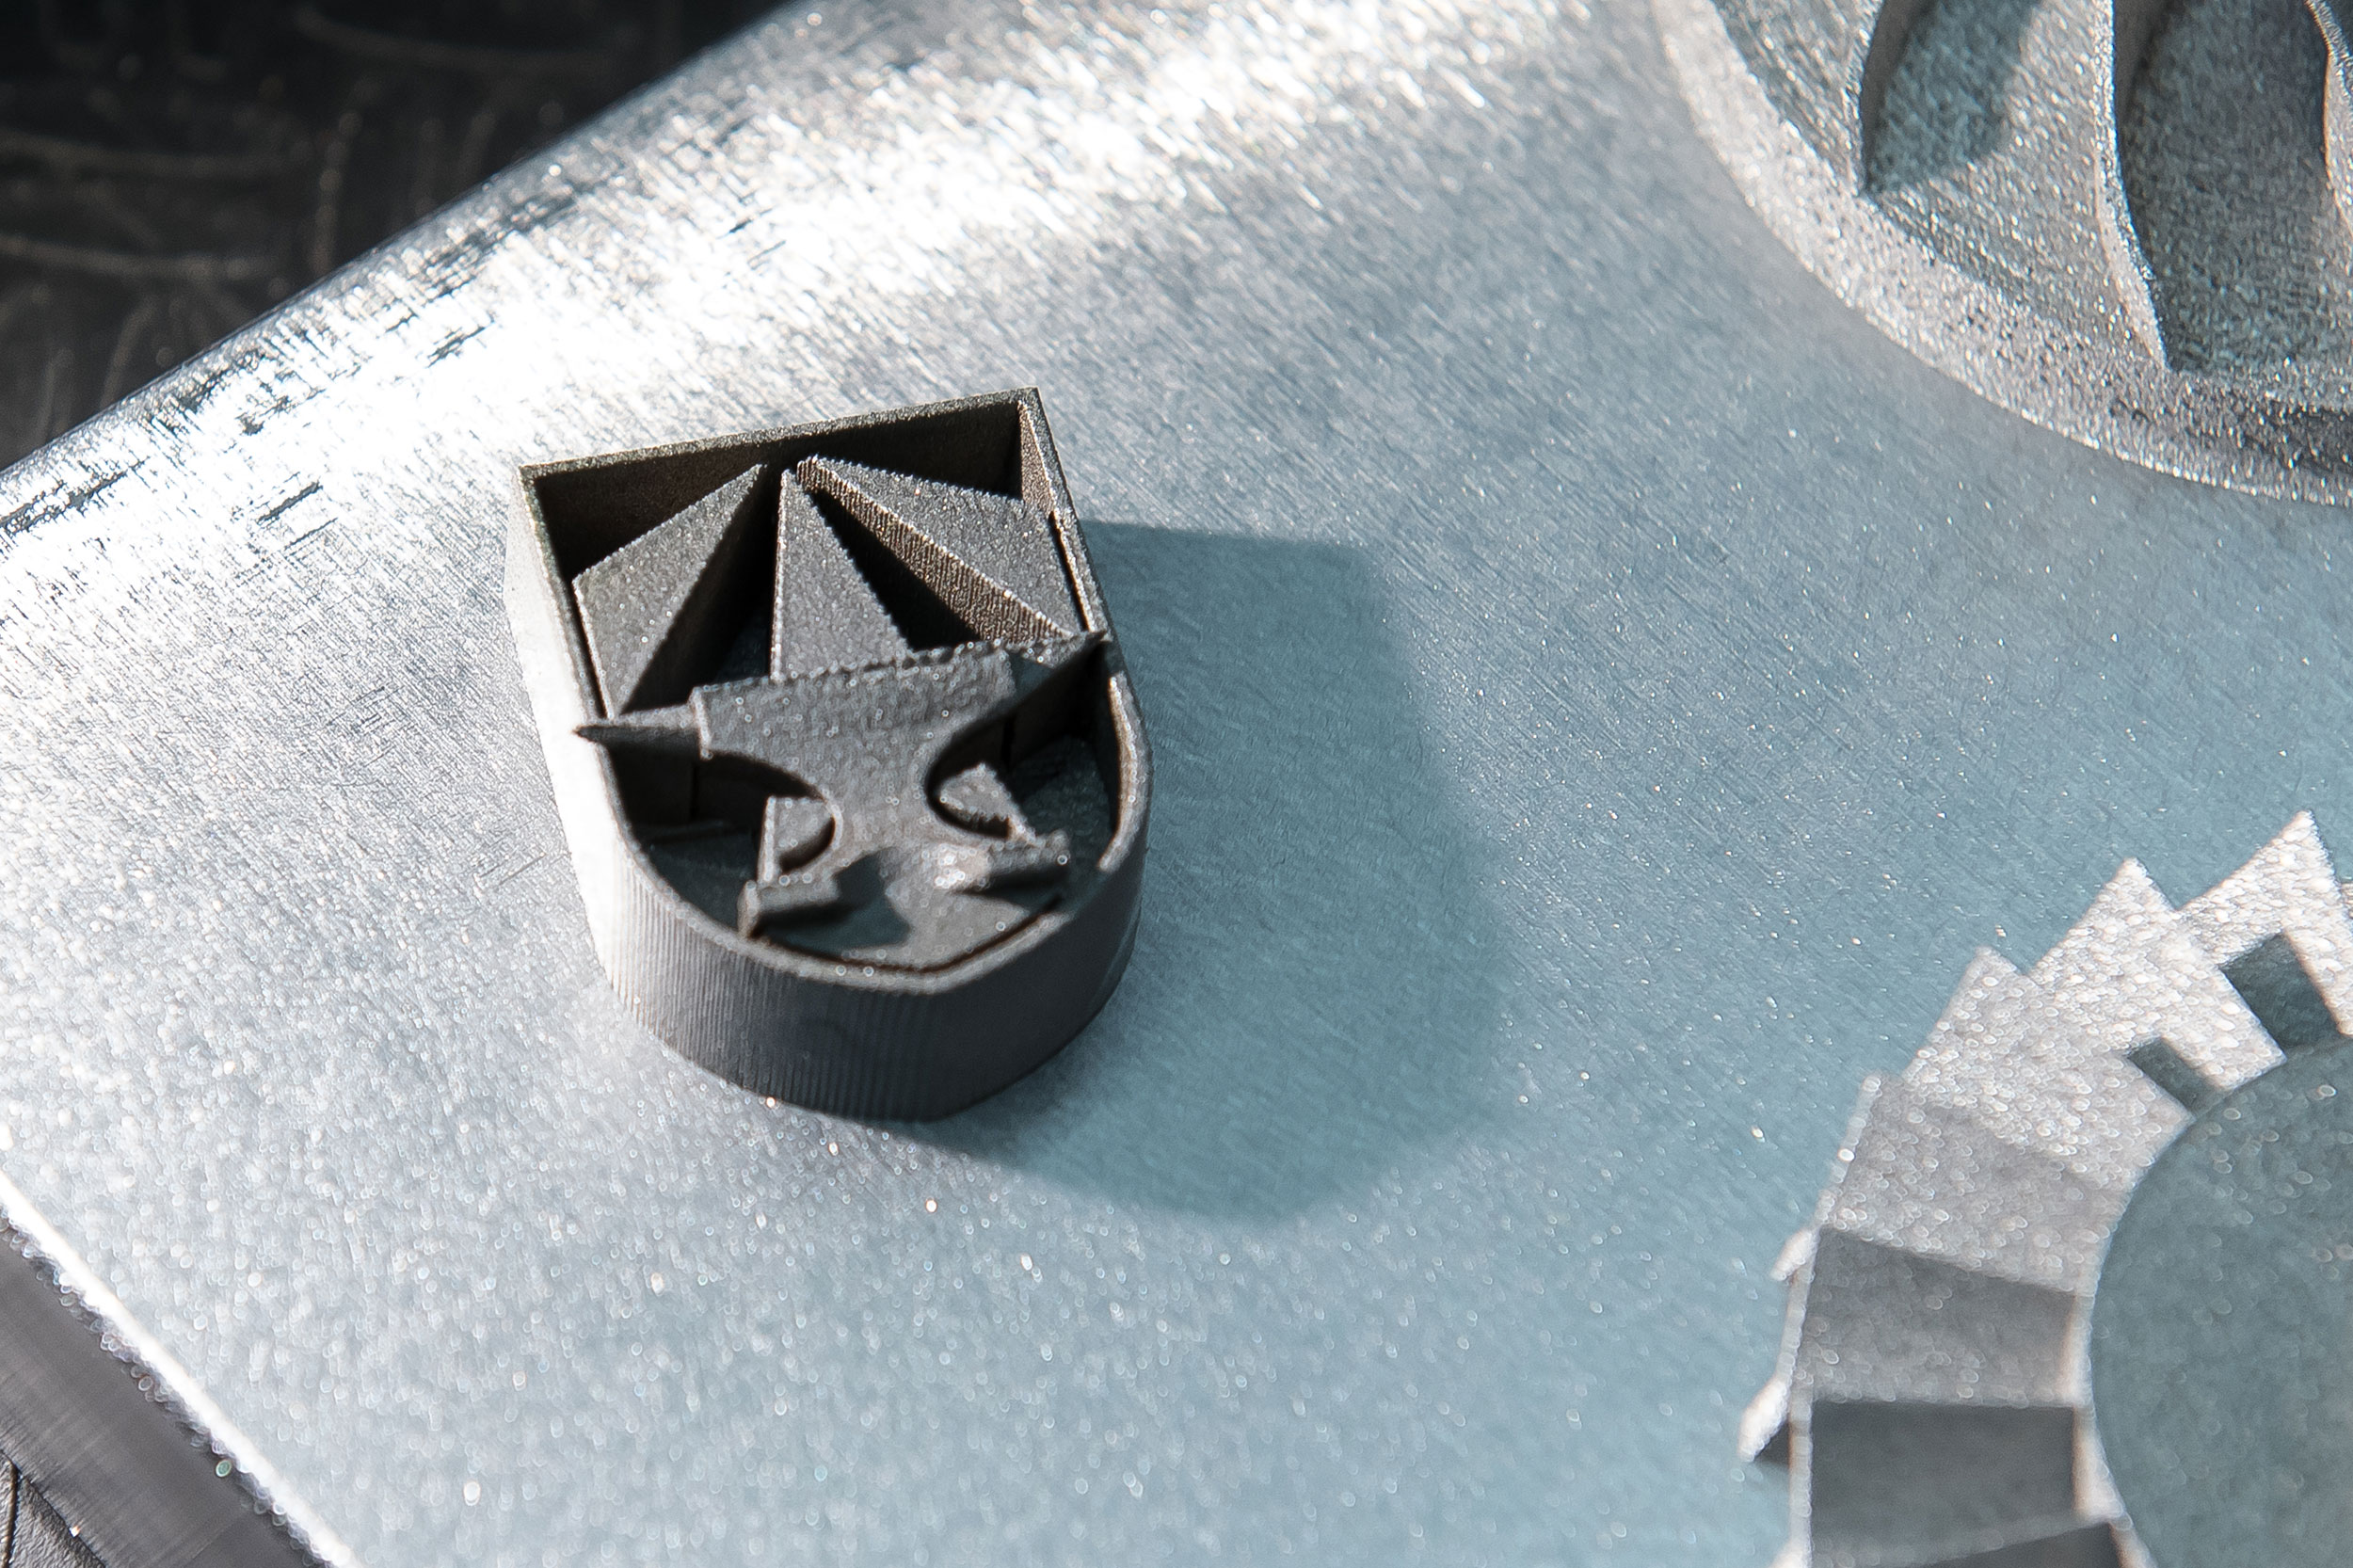 A 3D printed metal part testing the capabilities of custom alloys. This part shows the geometric capabilities of 3D printing certification with the symbol of the newly formed Army Futures Command. Photo via the U.S. Army/David McNally.